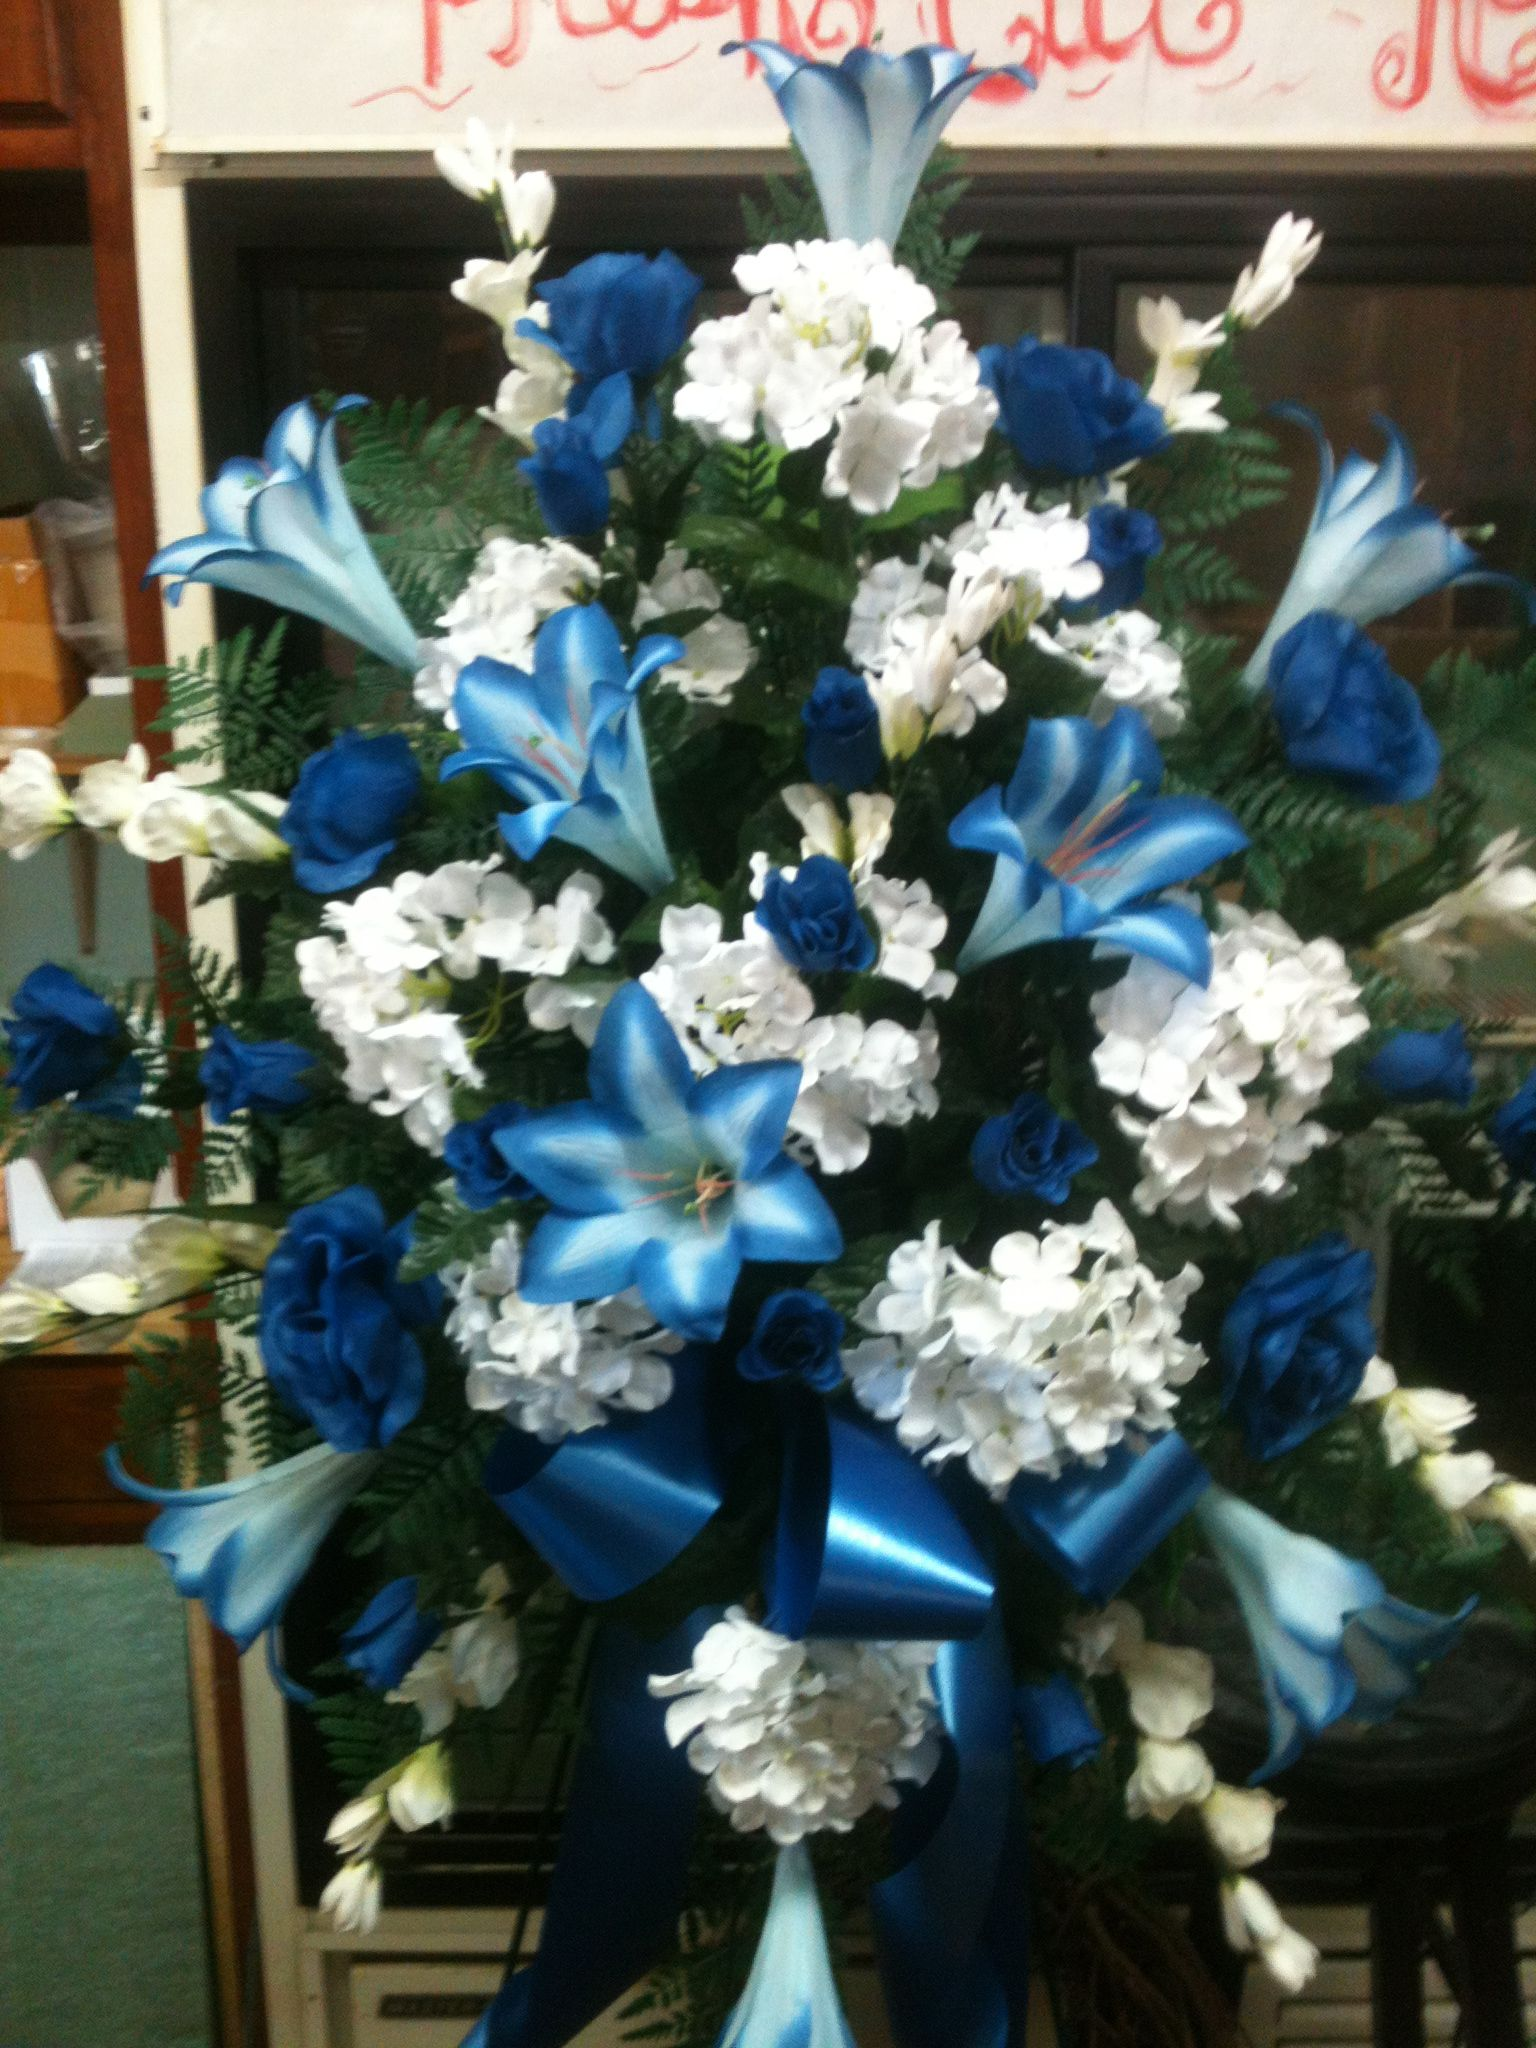 Masculine Silk Funeral Spray Funeral floral arrangements